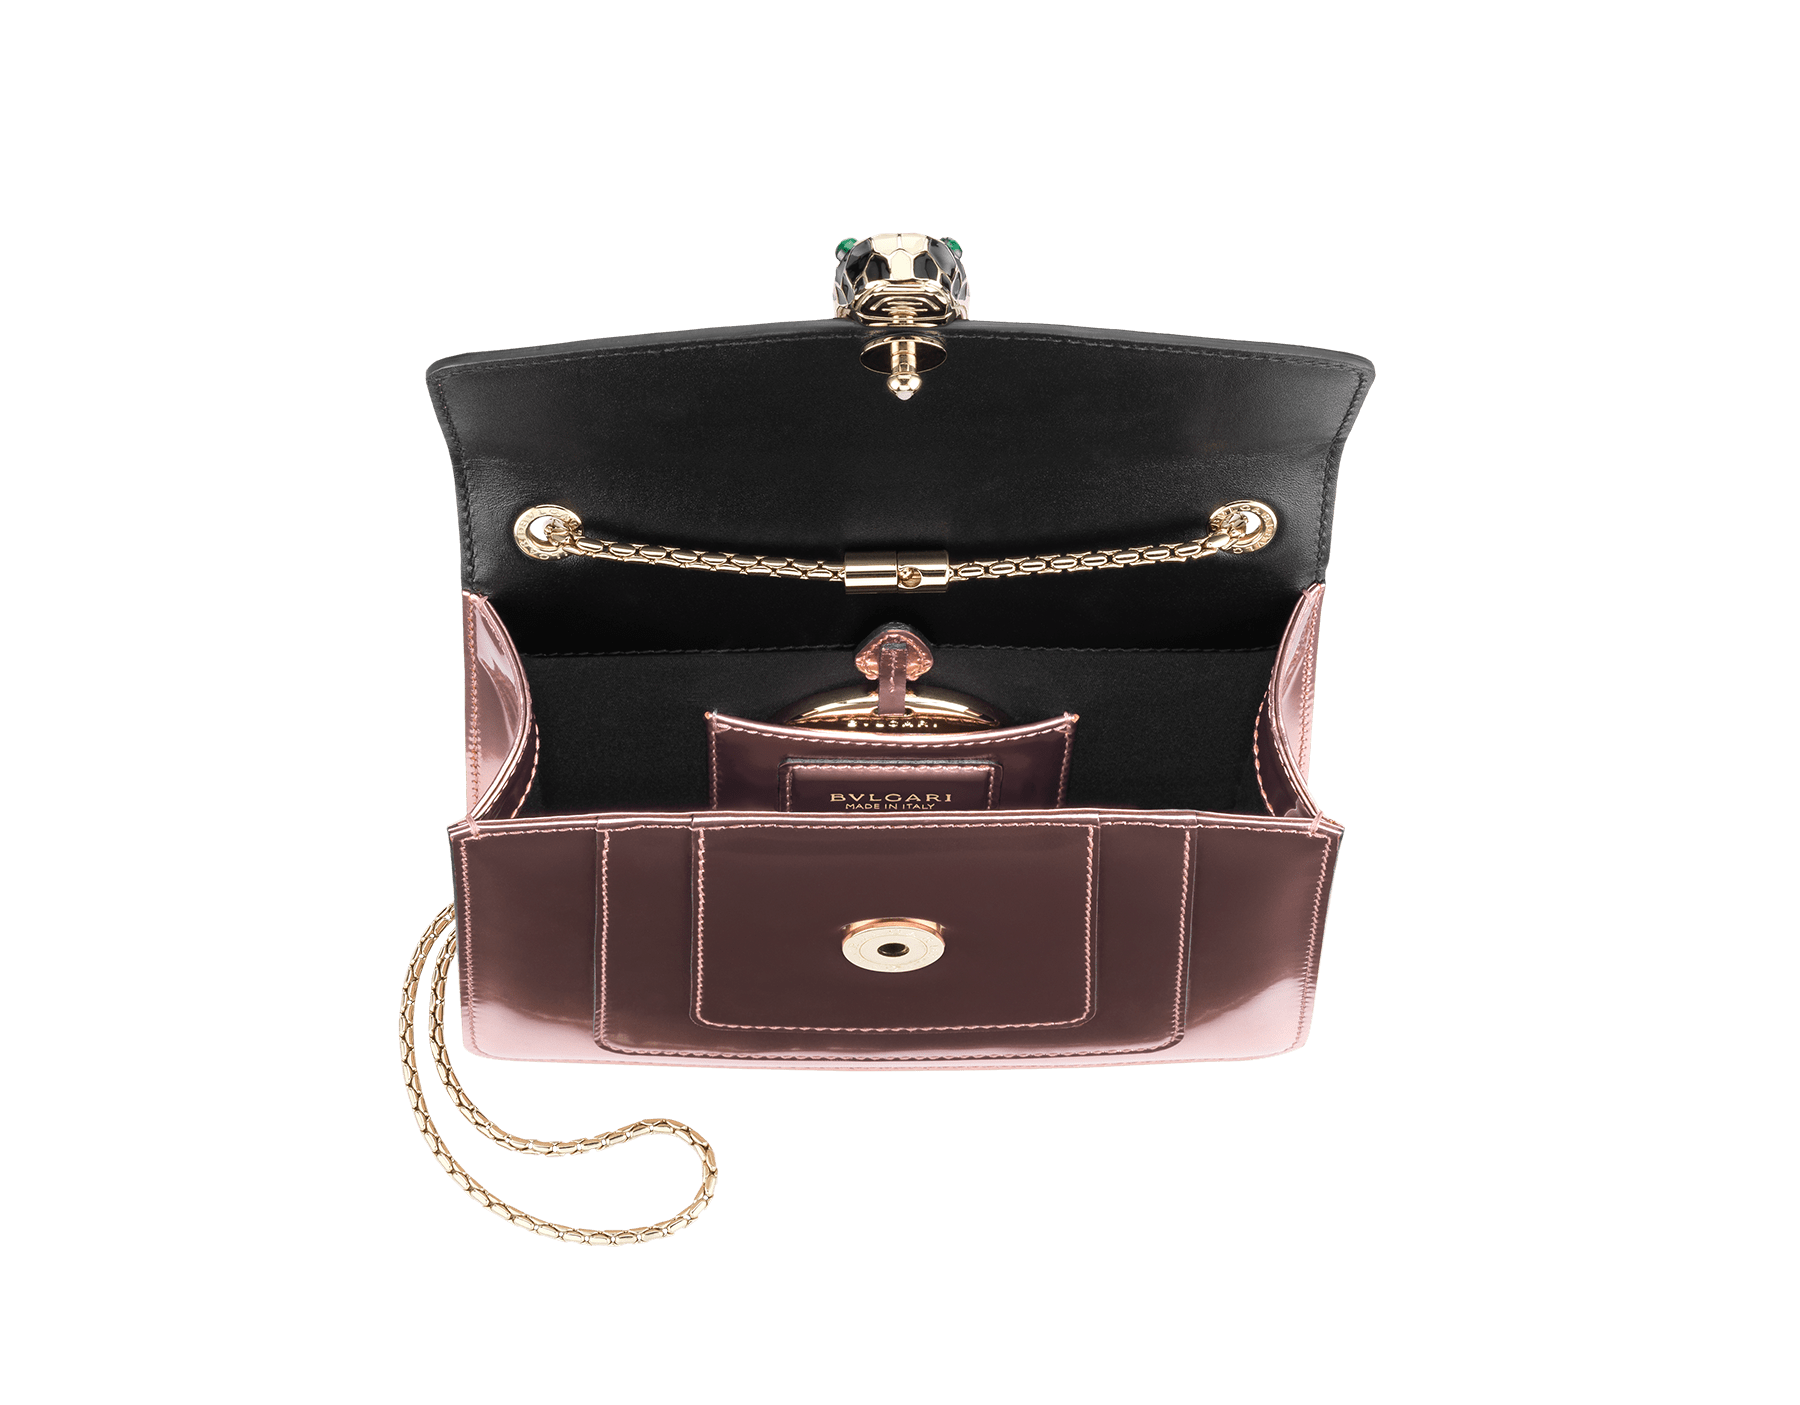 Flap cover bag Serpenti Forever in rose quartz brushed metallic calf leather. Brass light gold plated tempting snake head closure in black and white enamel, with eyes in green malachite. 284800 image 4